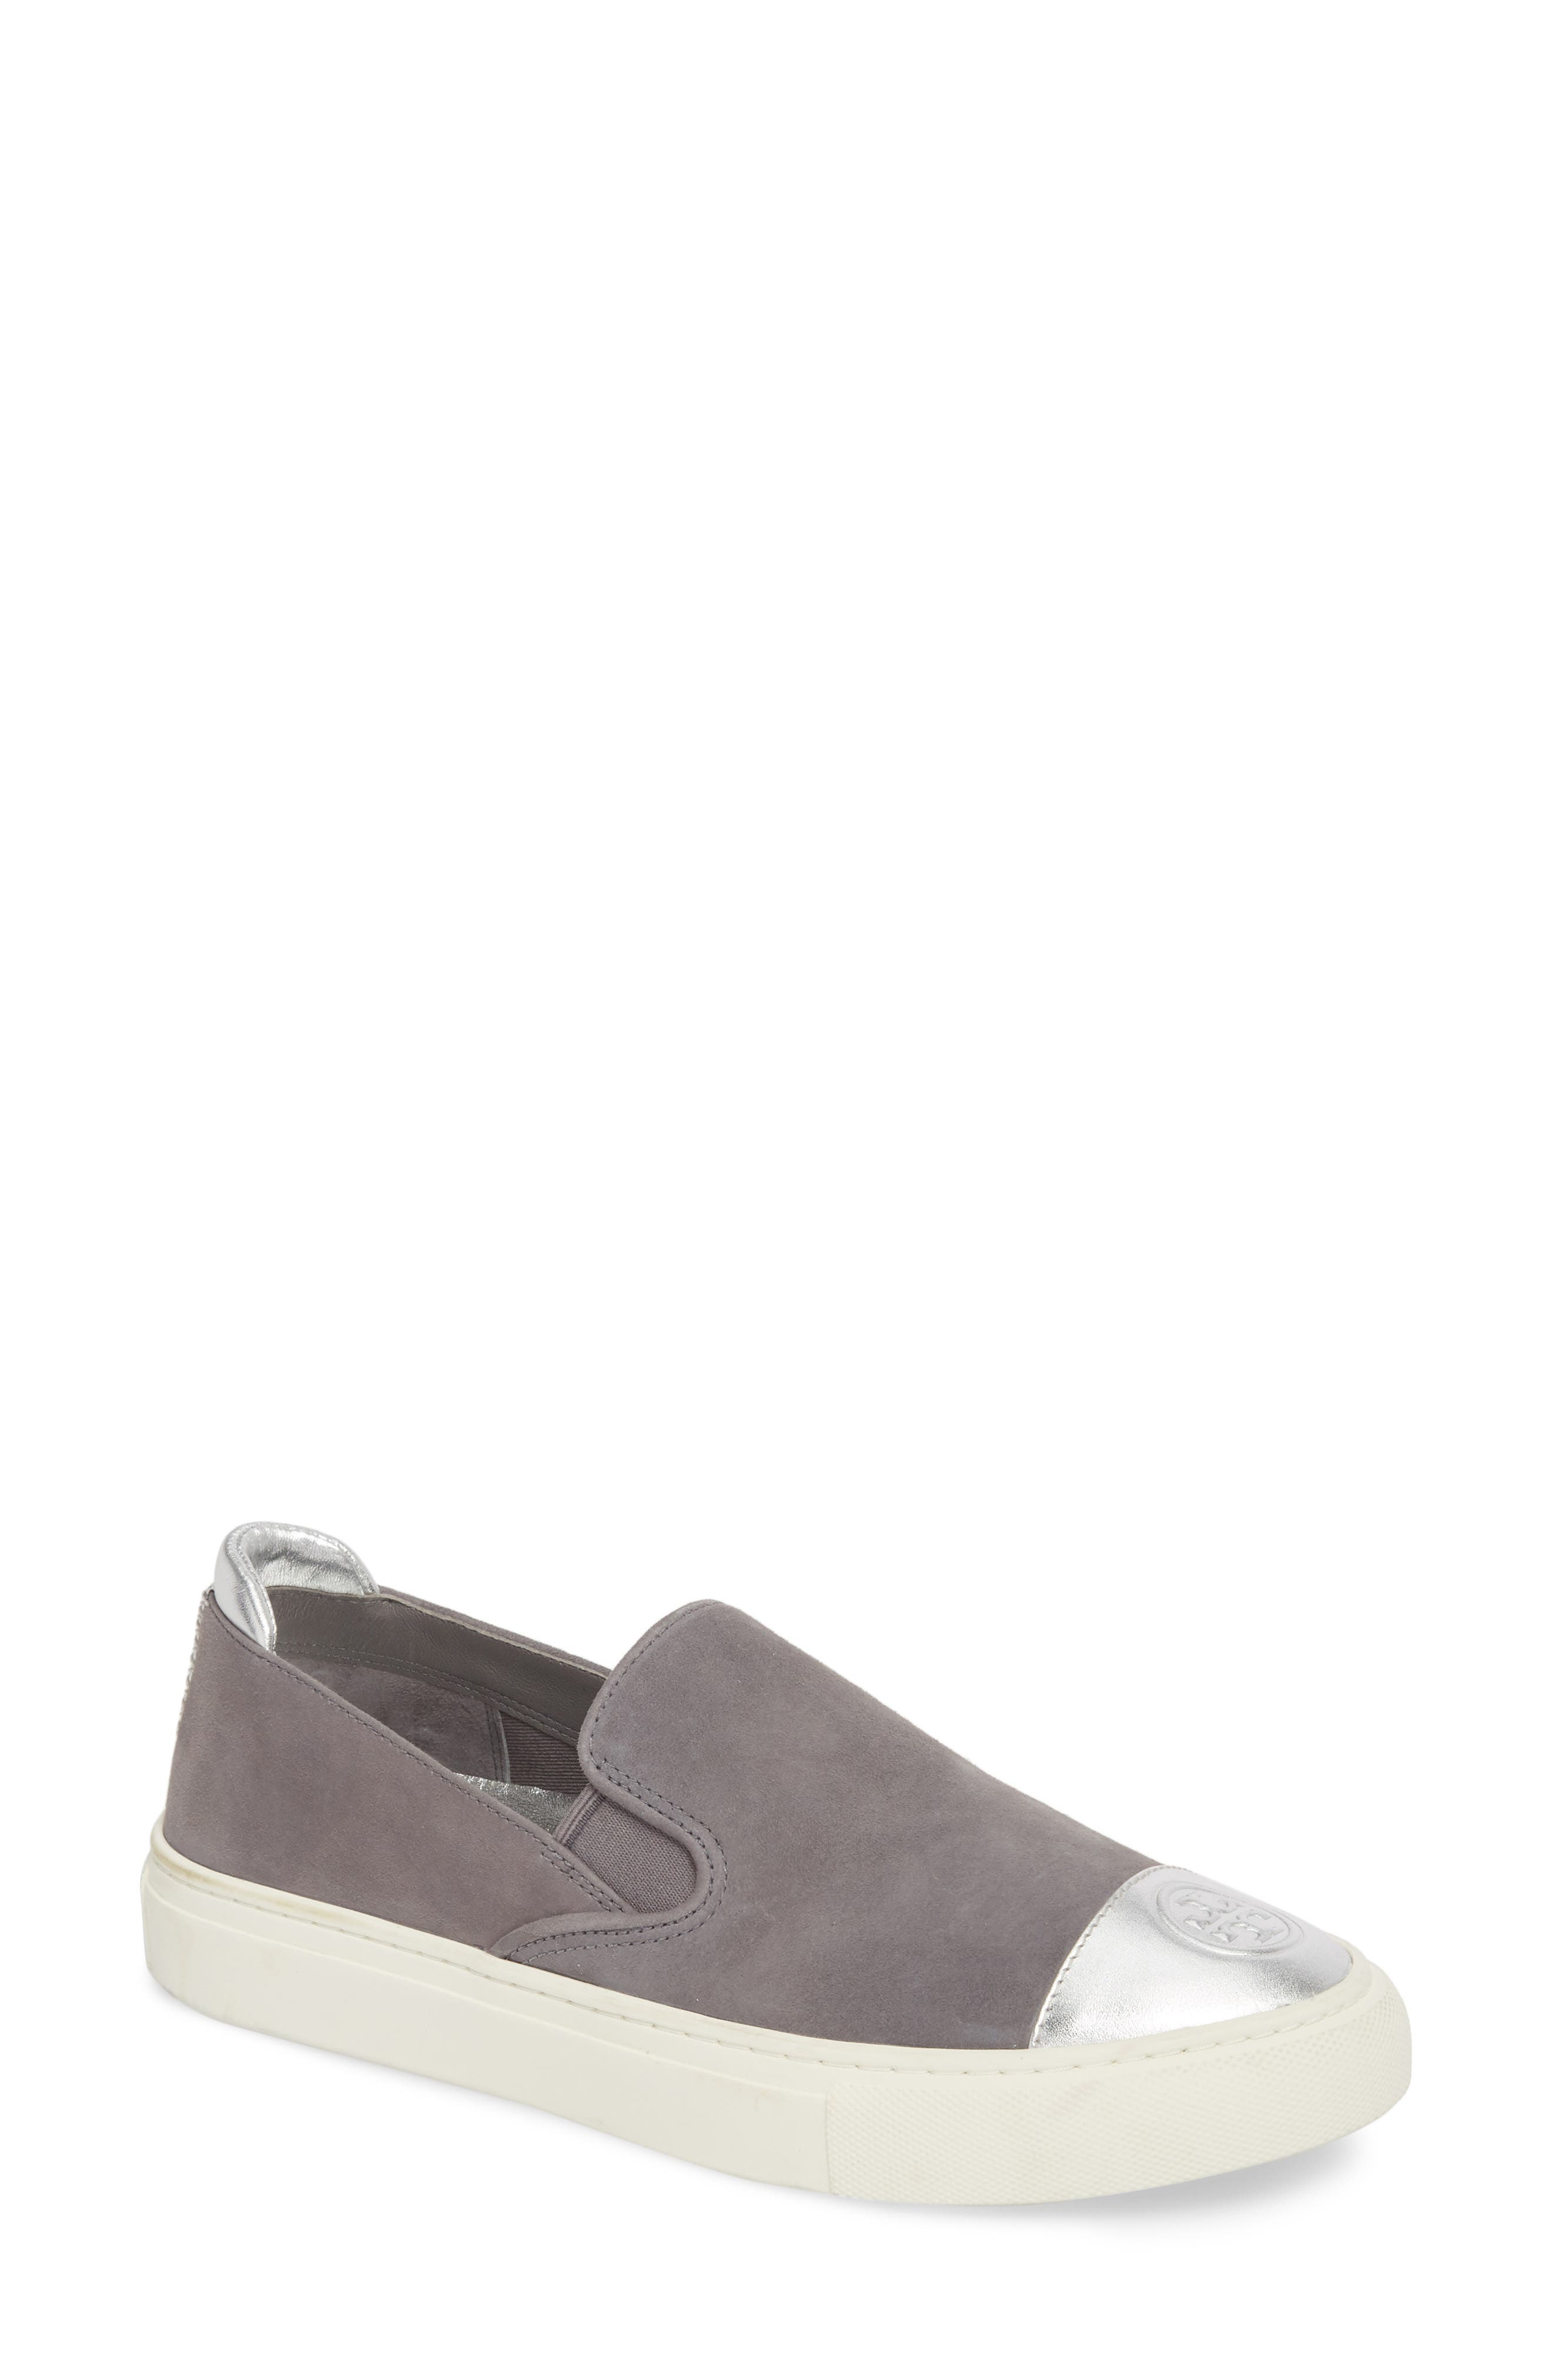 Colorblock Slip-On Sneaker,                             Main thumbnail 1, color,                             Carbon/ Silver